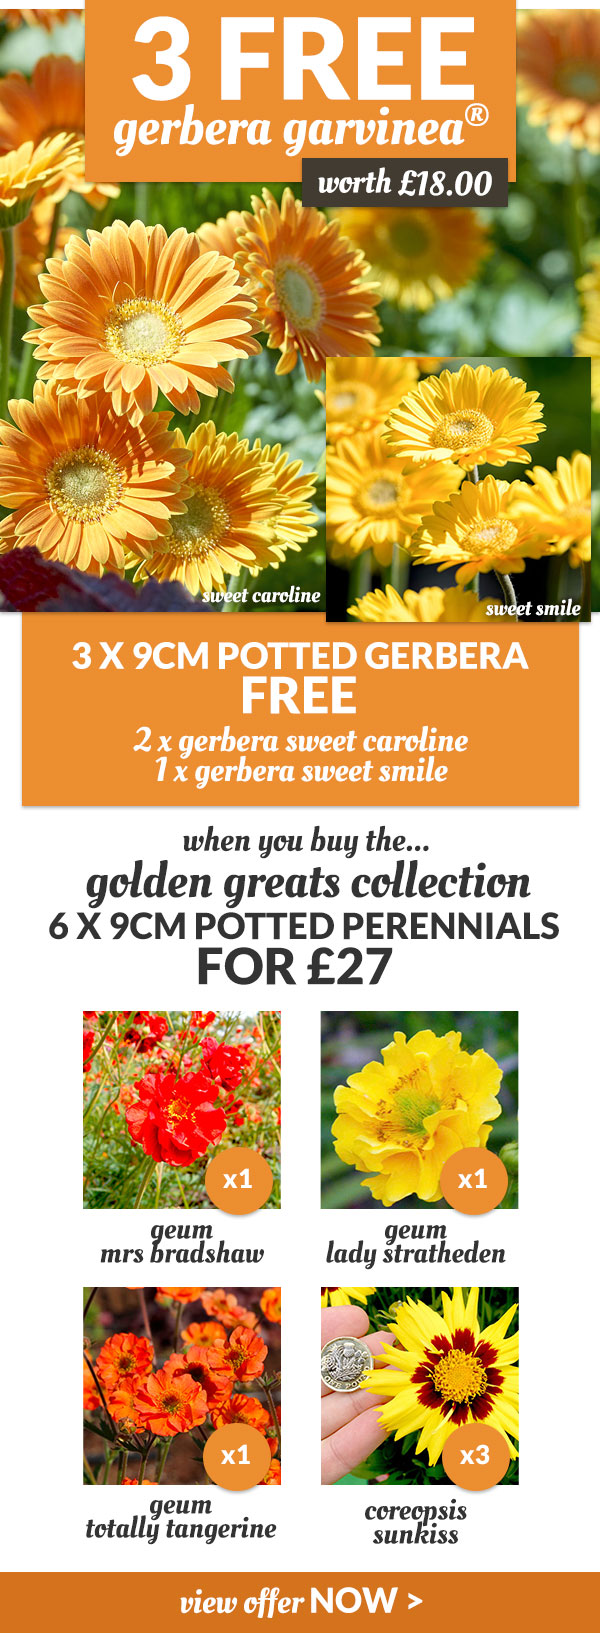 3 Free Gerbera When You Buy The Golden Greats Collection